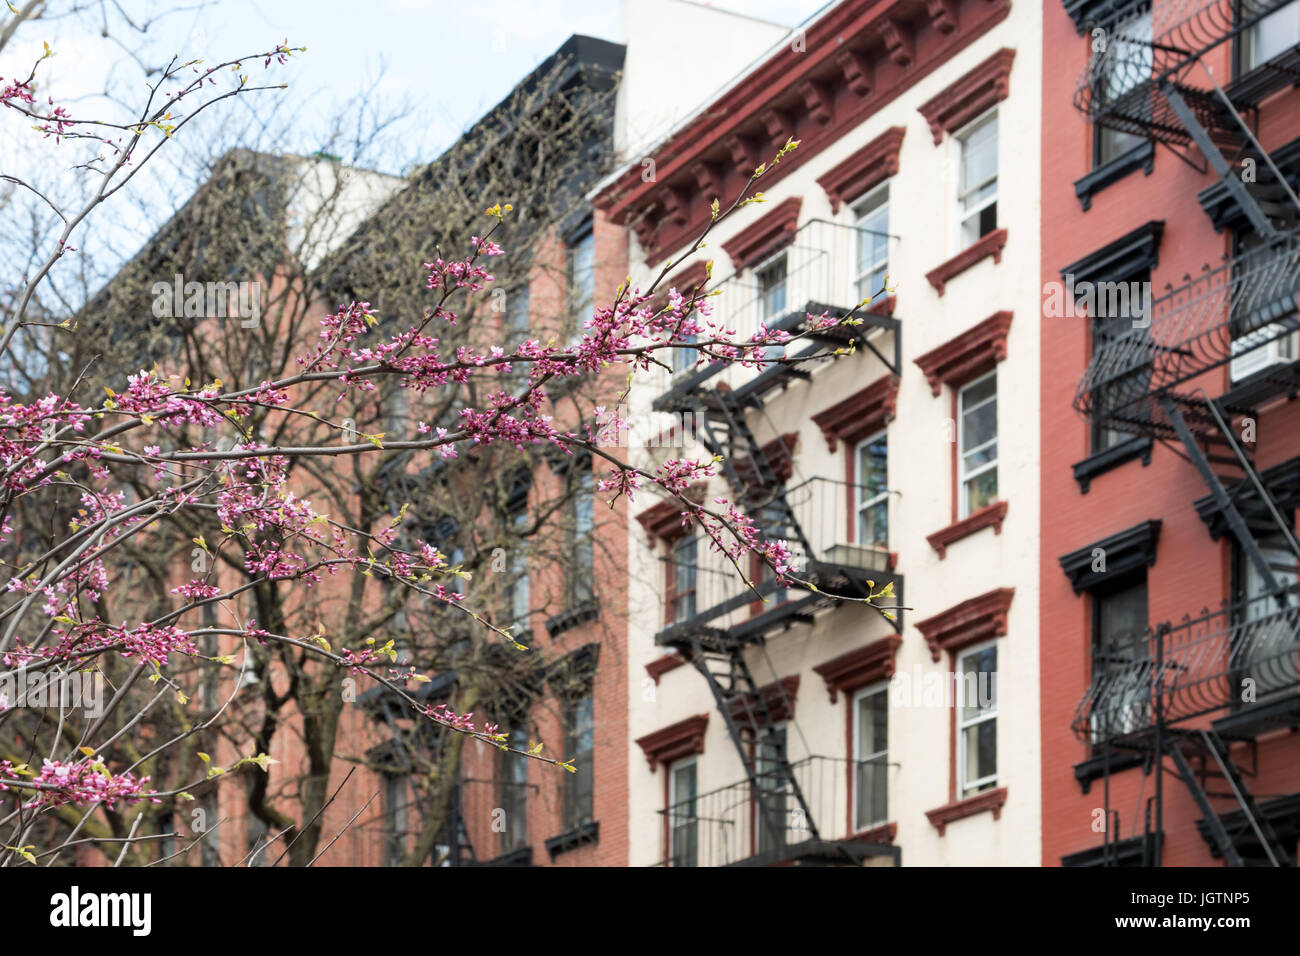 New York City spring street scene with colorful blooming tree and background of old apartment buildings - Stock Image